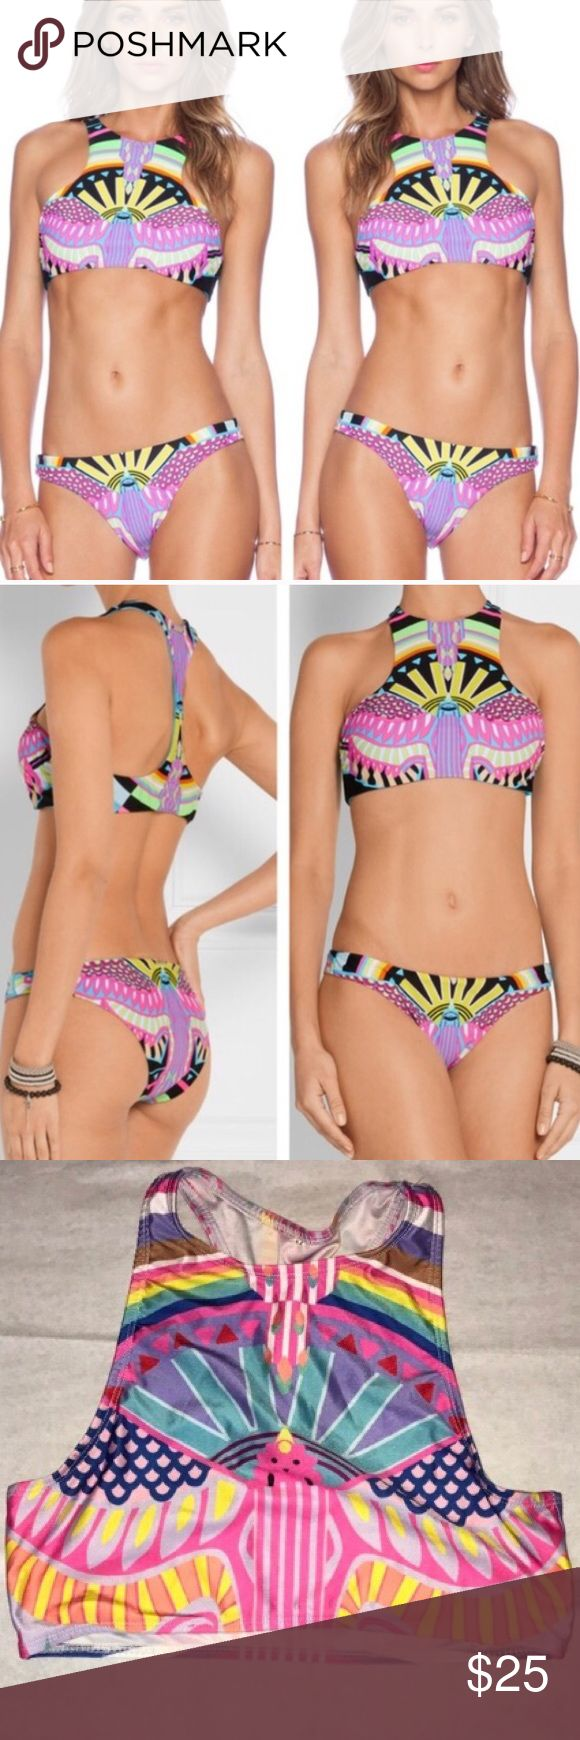 Bright colorful festival rainbow cheeky bikini Bright colorful festival rainbow crop top cheeky bikini, both size medium! Very fun swimsuit, with racerback top and high neckline. Actually bikini for sale in last 4 photos. NOT Mara Hoffman but looks like it could be with its bright bohemian tribal design. I believe this is originally from SheInside though Mara Hoffman Swim Bikinis